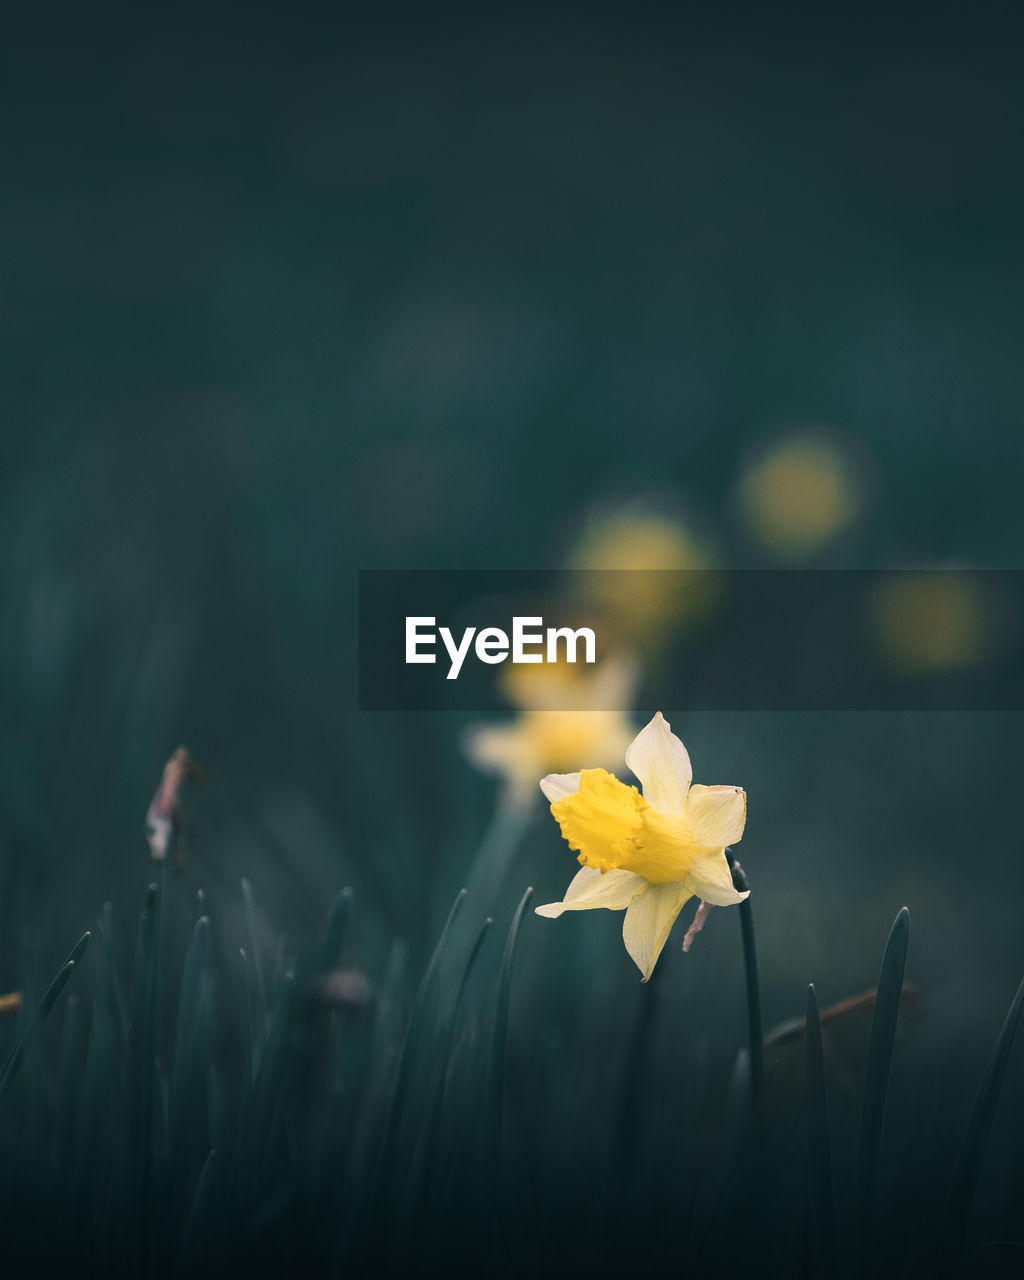 flowering plant, flower, plant, freshness, vulnerability, fragility, yellow, beauty in nature, growth, petal, flower head, close-up, inflorescence, nature, selective focus, no people, field, day, plant stem, focus on foreground, outdoors, pollen, blade of grass